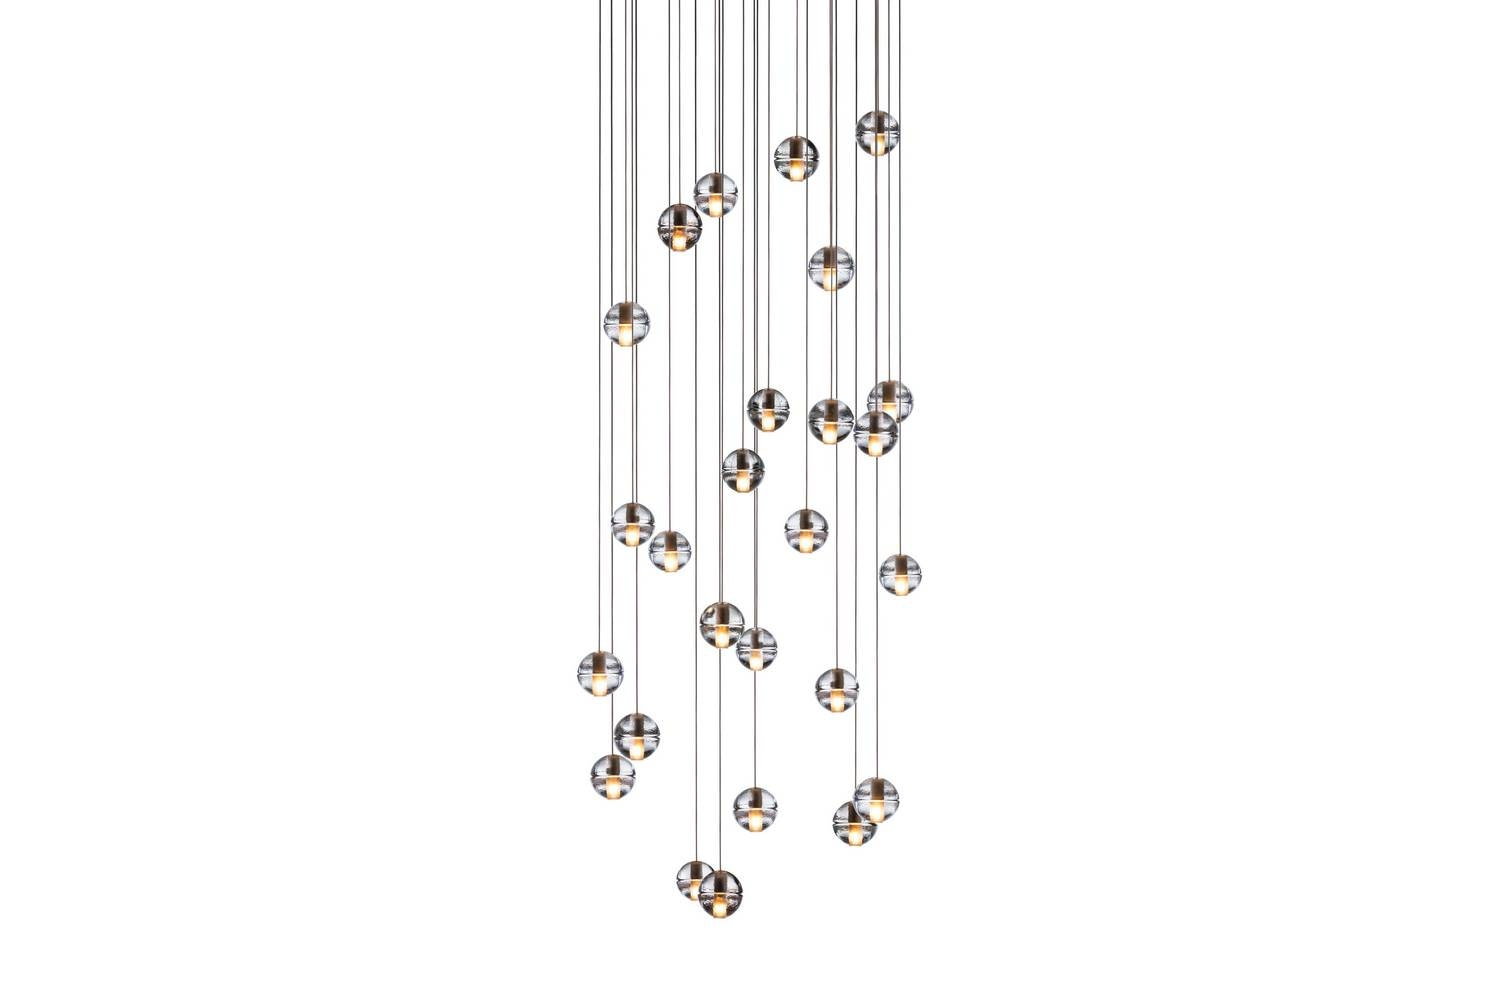 14.26 Suspension Lamp by Omer Arbel for Bocci